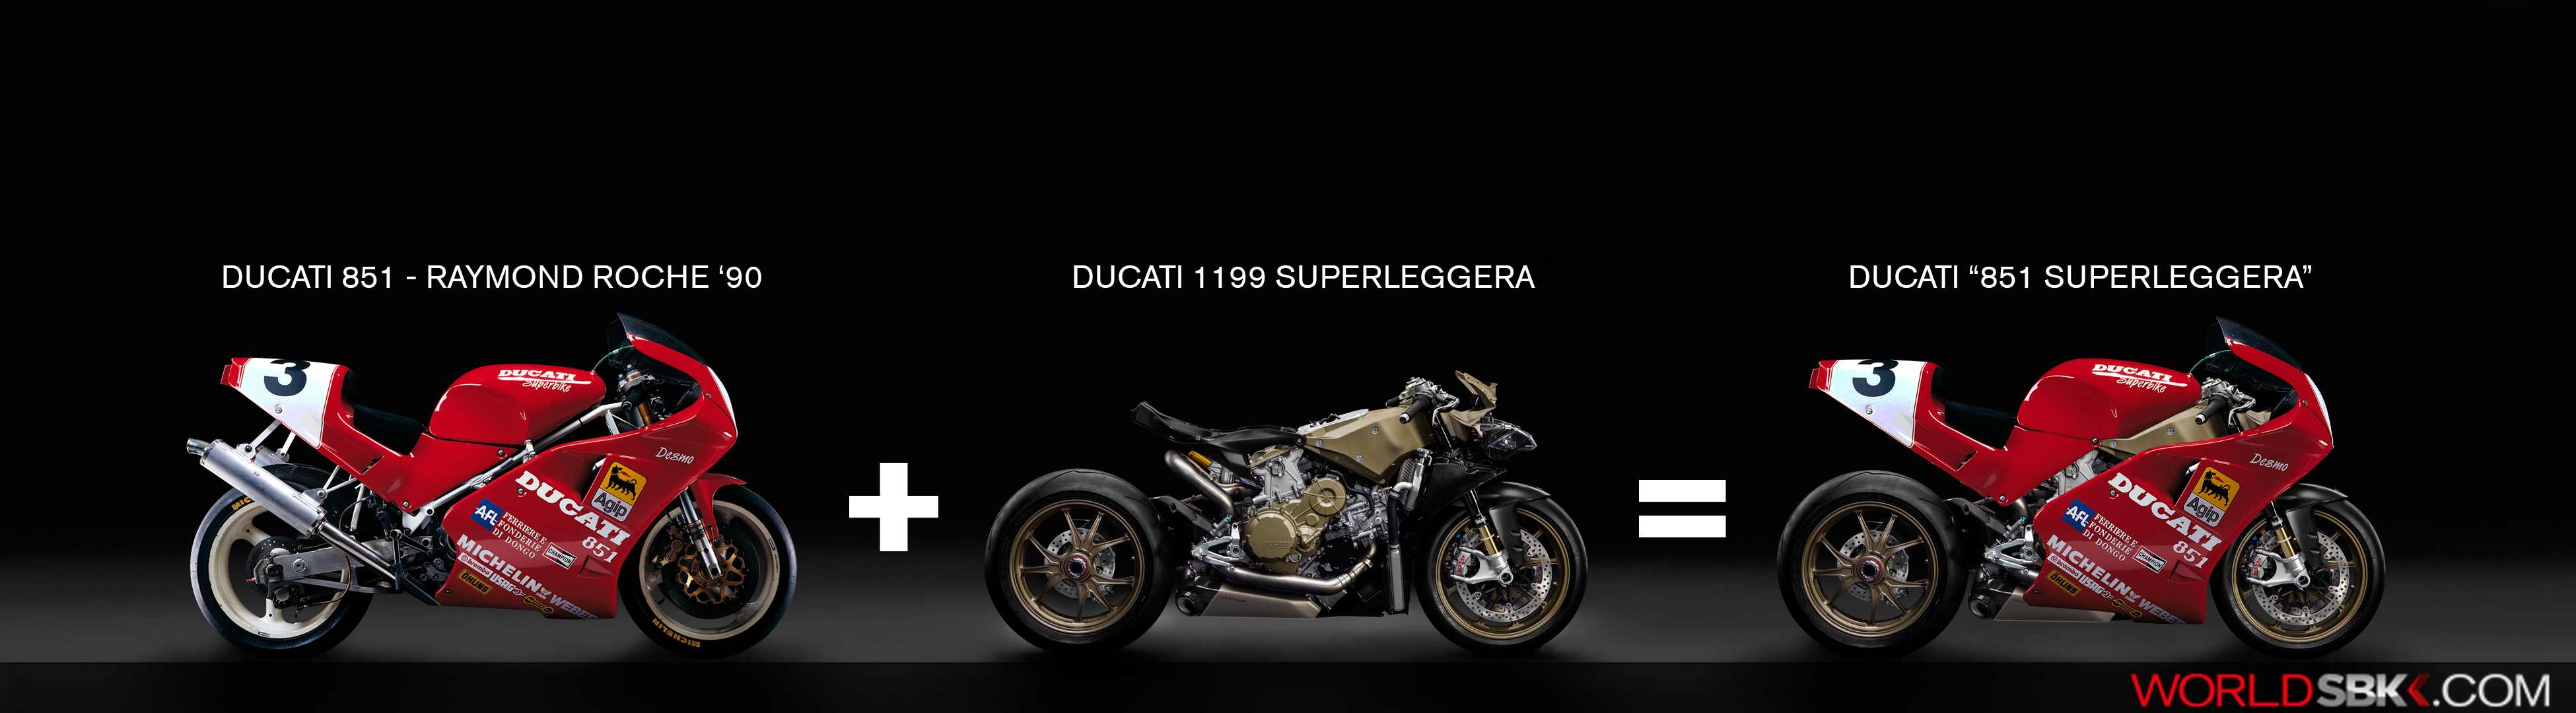 Panigale 851 Speedzilla Motorcycle Message Forums